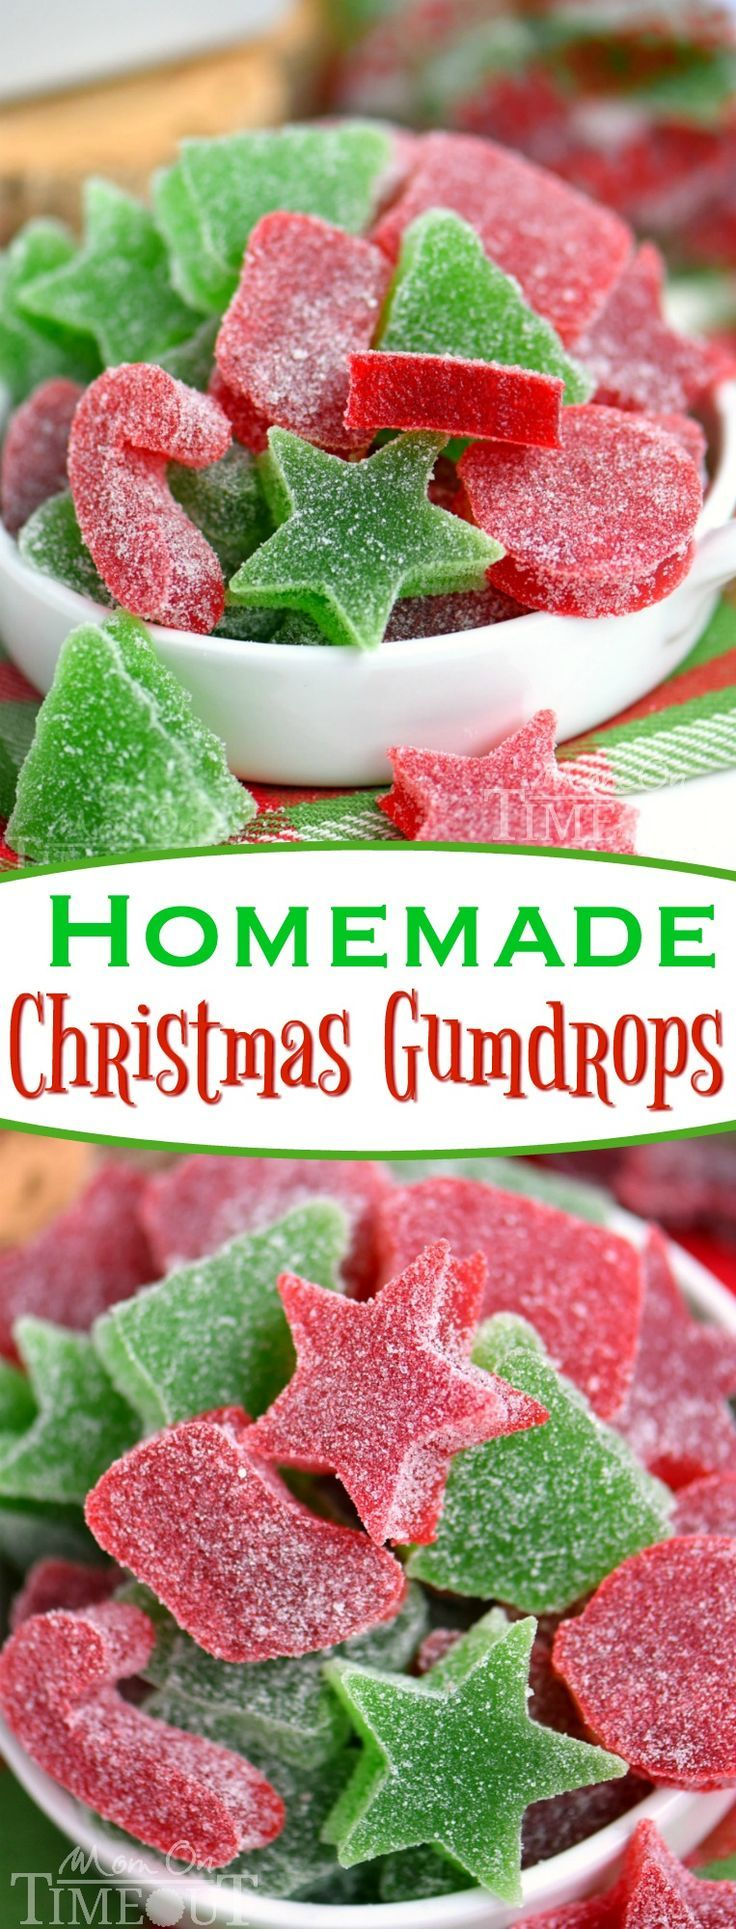 These Homemade Gumdrops are the perfect treat to make for friends and family during the holidays! Made with just a handful of ingredients - including applesauce - these gumdrops are sure to become a holiday tradition! A Christmas favorite with our family! // Mom On Timeout #Christmas #gumdrops #recipe #candy #easy #kidfriendly